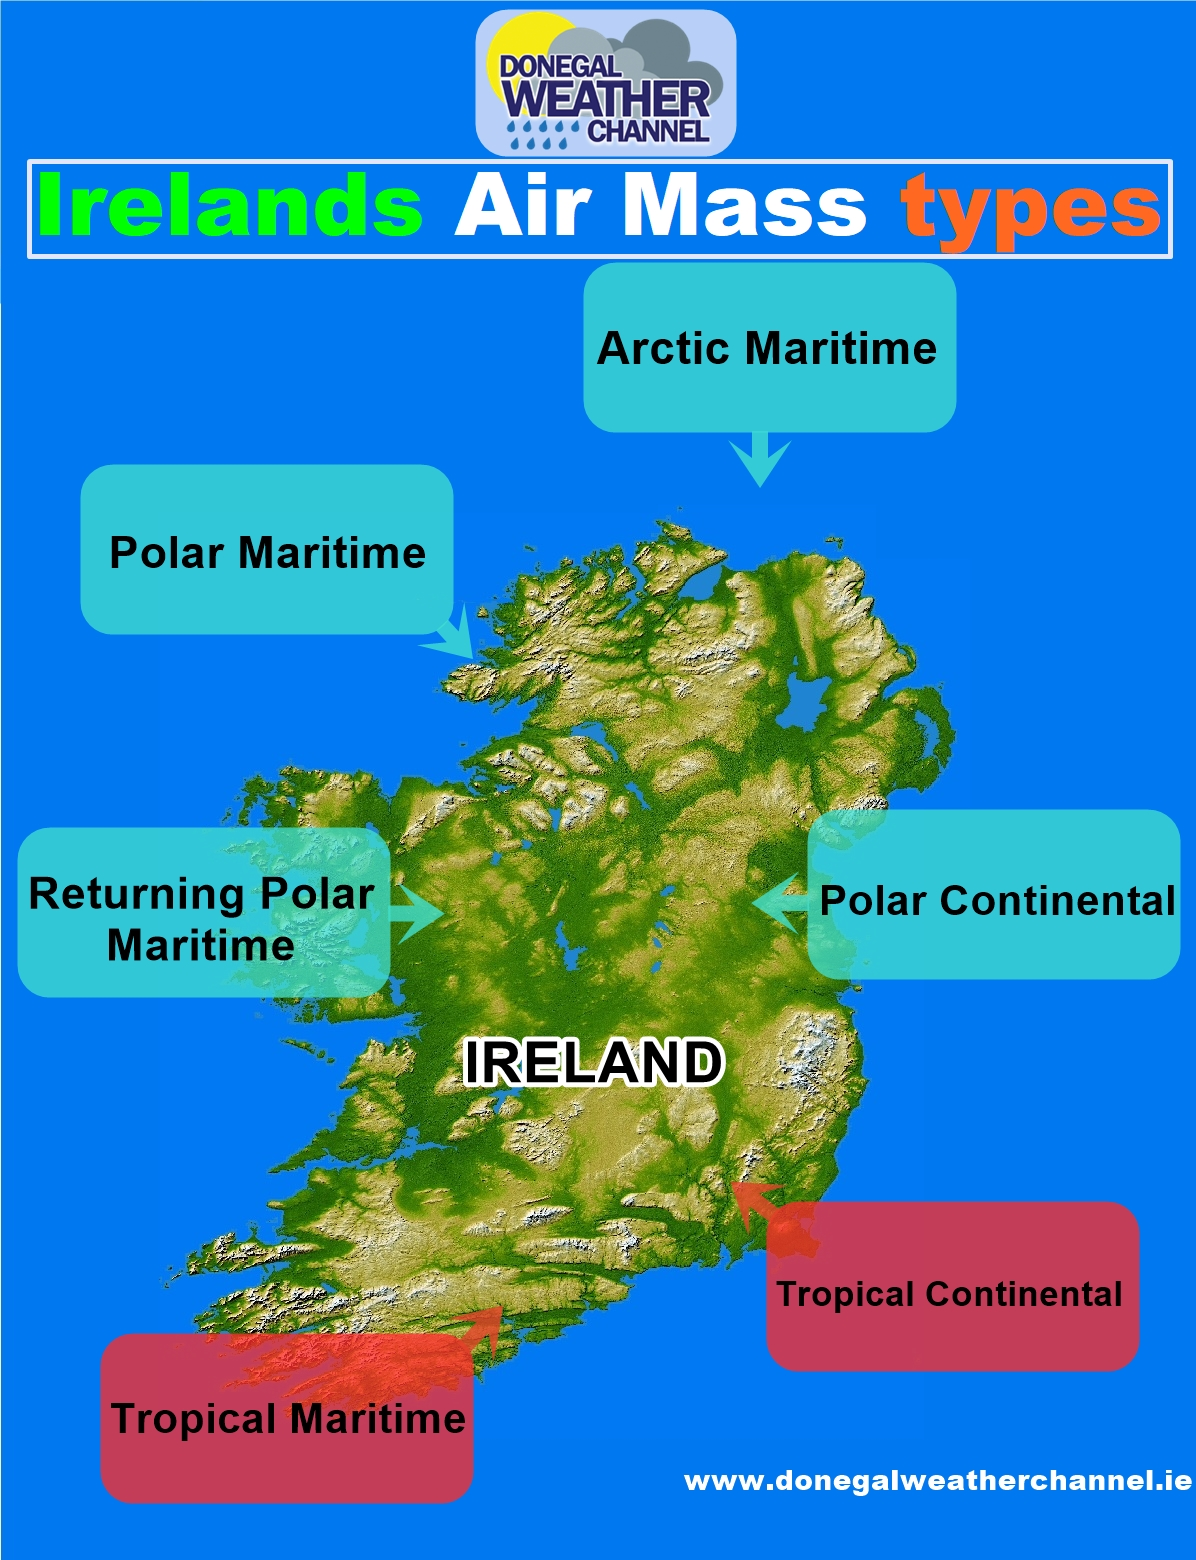 Map shown the different air mass